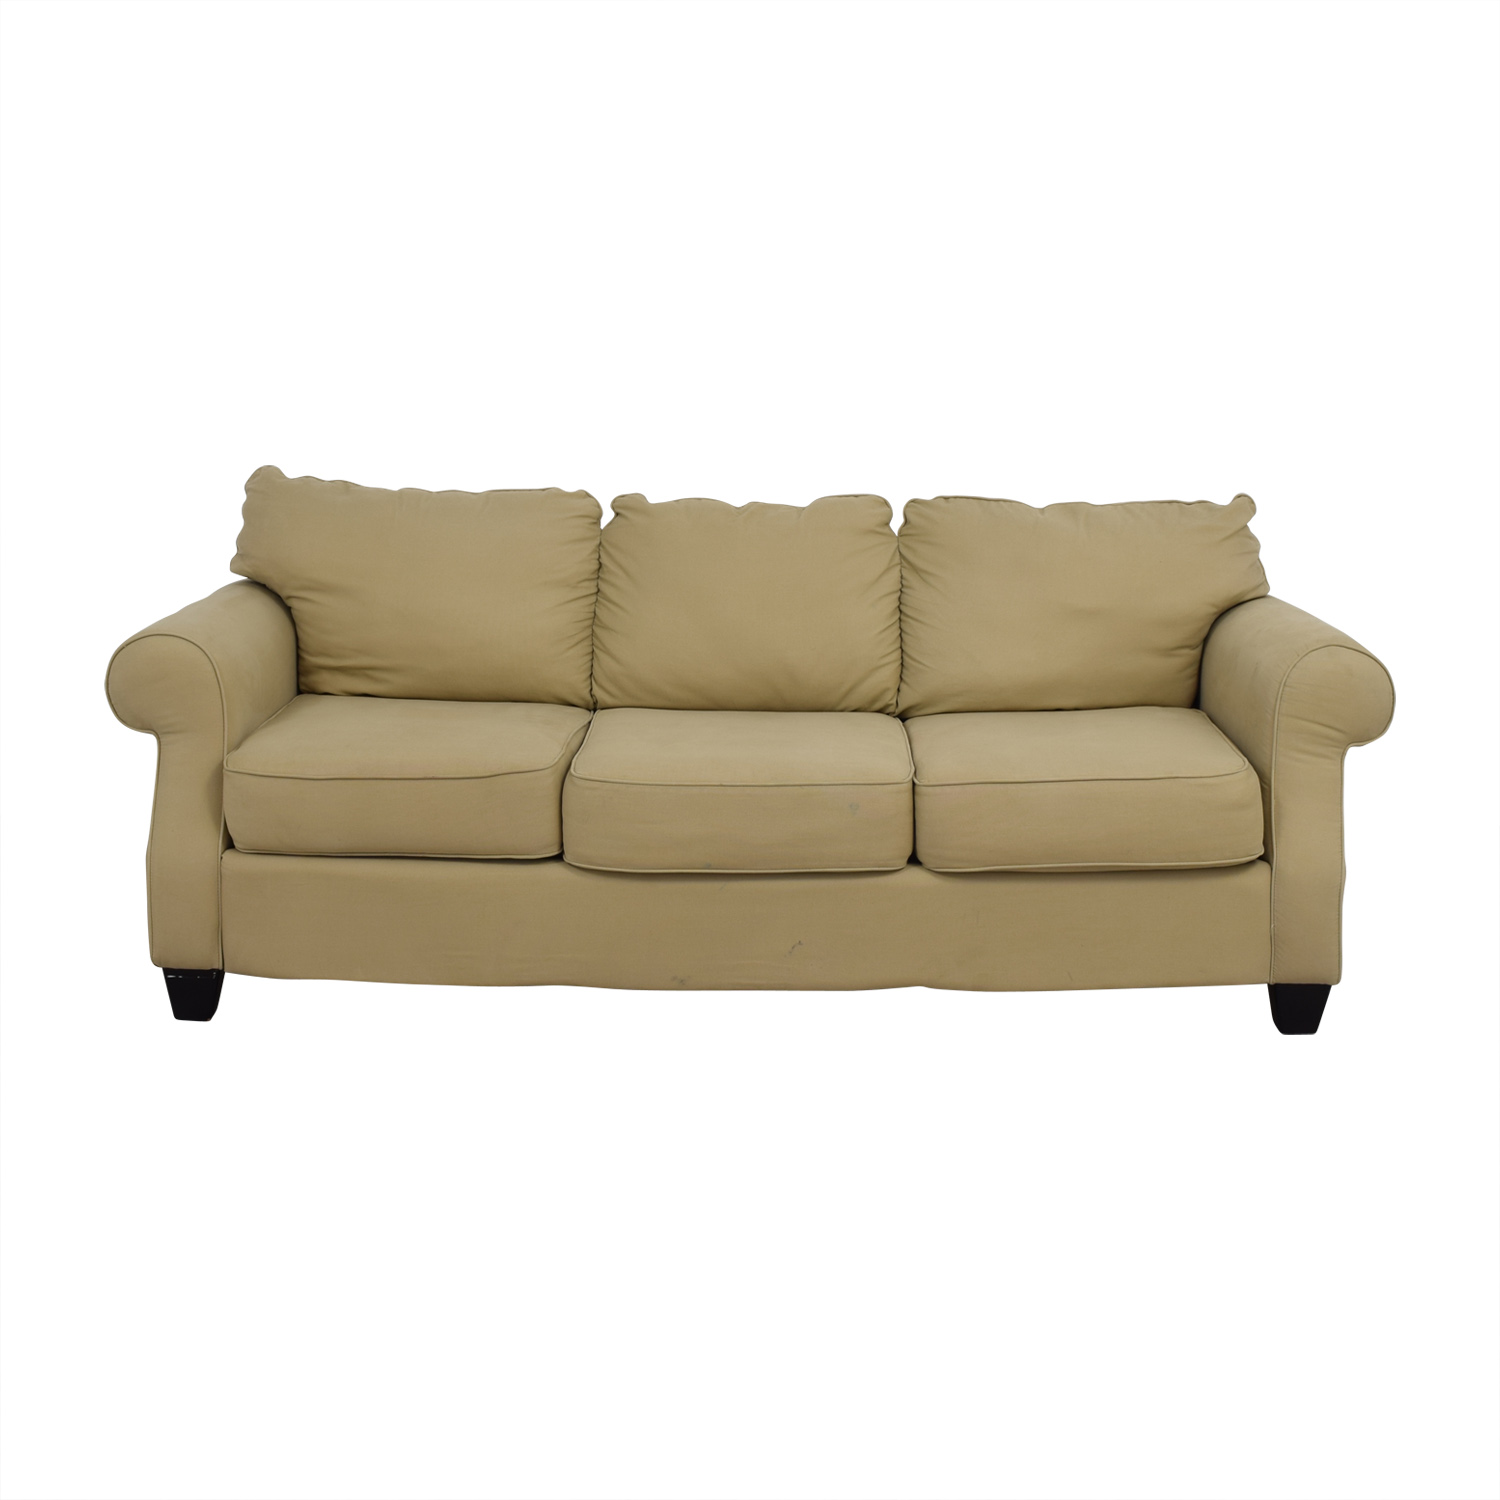 shop  Beige Three-Cushion Curved Arm Sofa online